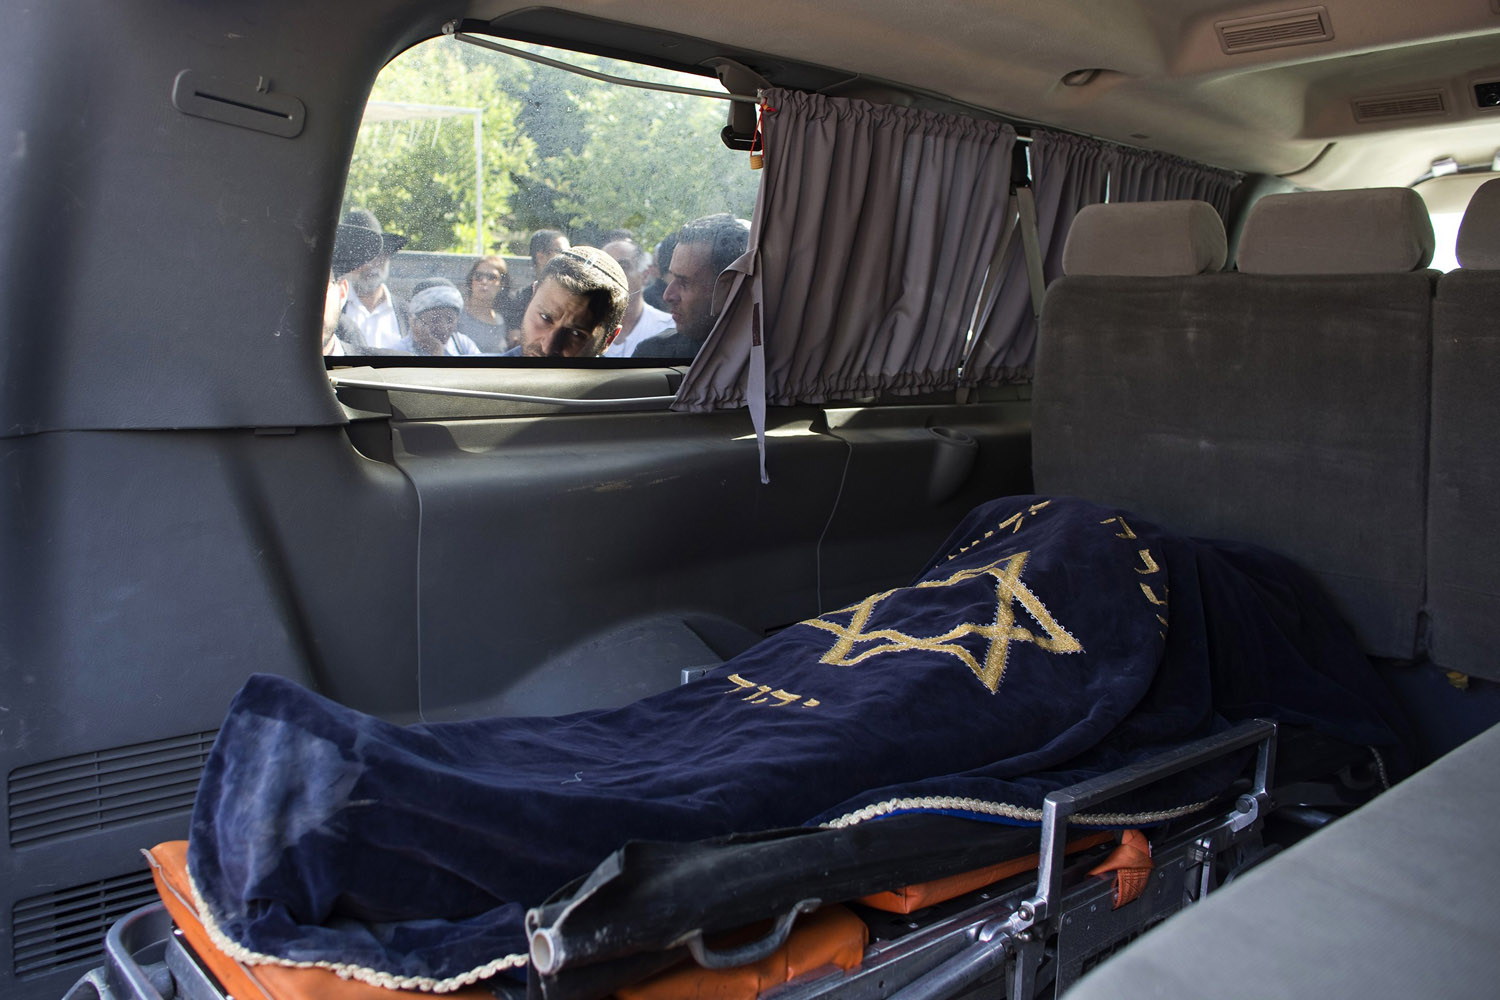 Jul. 16, 2014. An Israeli looks through the window of a van carrying the body of Dror Khenin before his funeral in Yehud, east of Tel Aviv, after Khenin was killed on Tuesday when a short-range rocket landed near the border with Gaza.